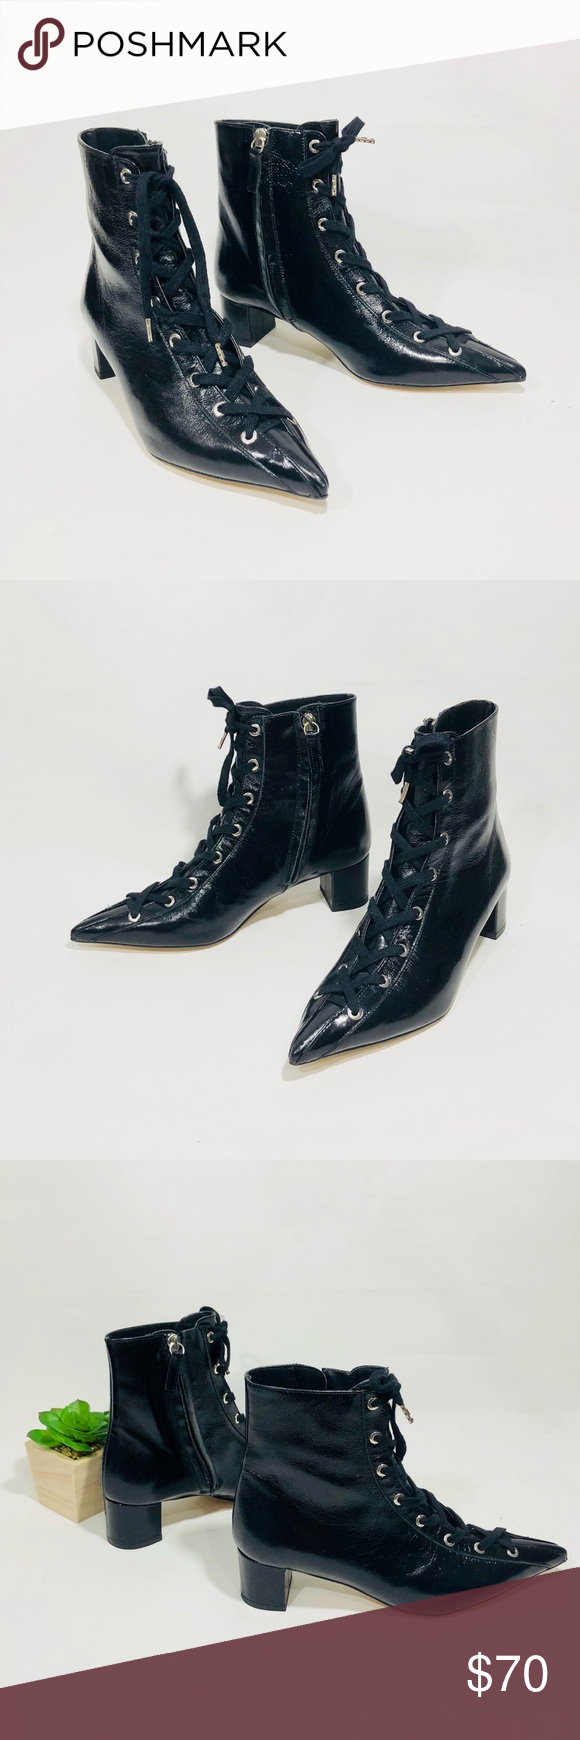 b3ba09d633f2 ZARA BLACK LEATHER LACE-UP ANKLE BOOTS Zara Lace up Boots Size  36